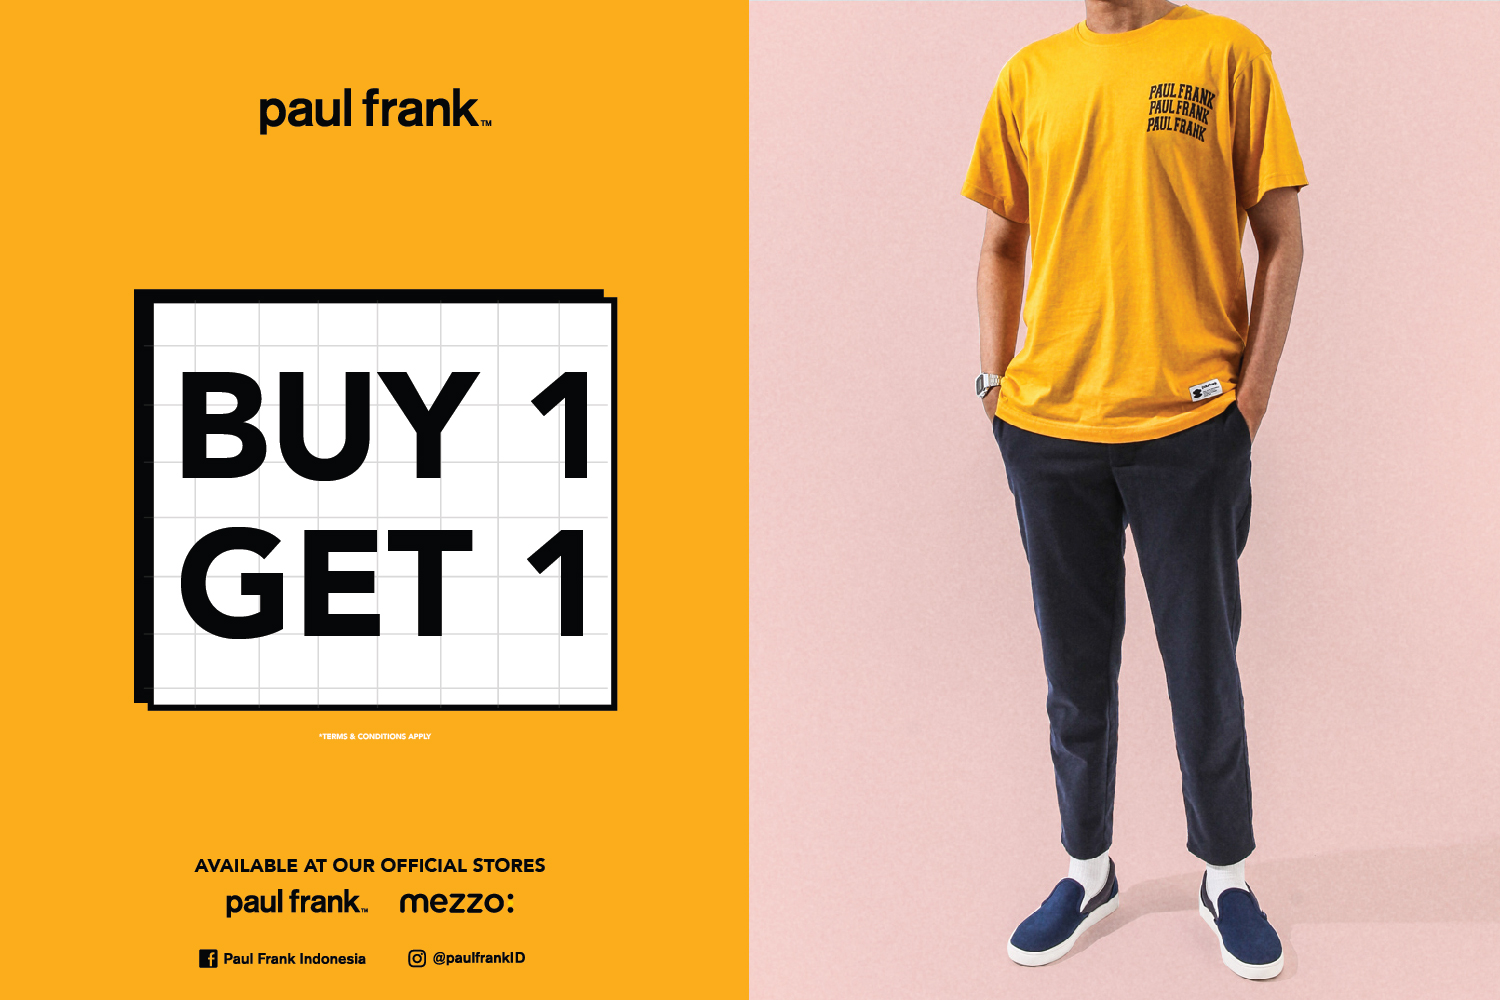 Paul Frank Gelar Promo Buy One Get One